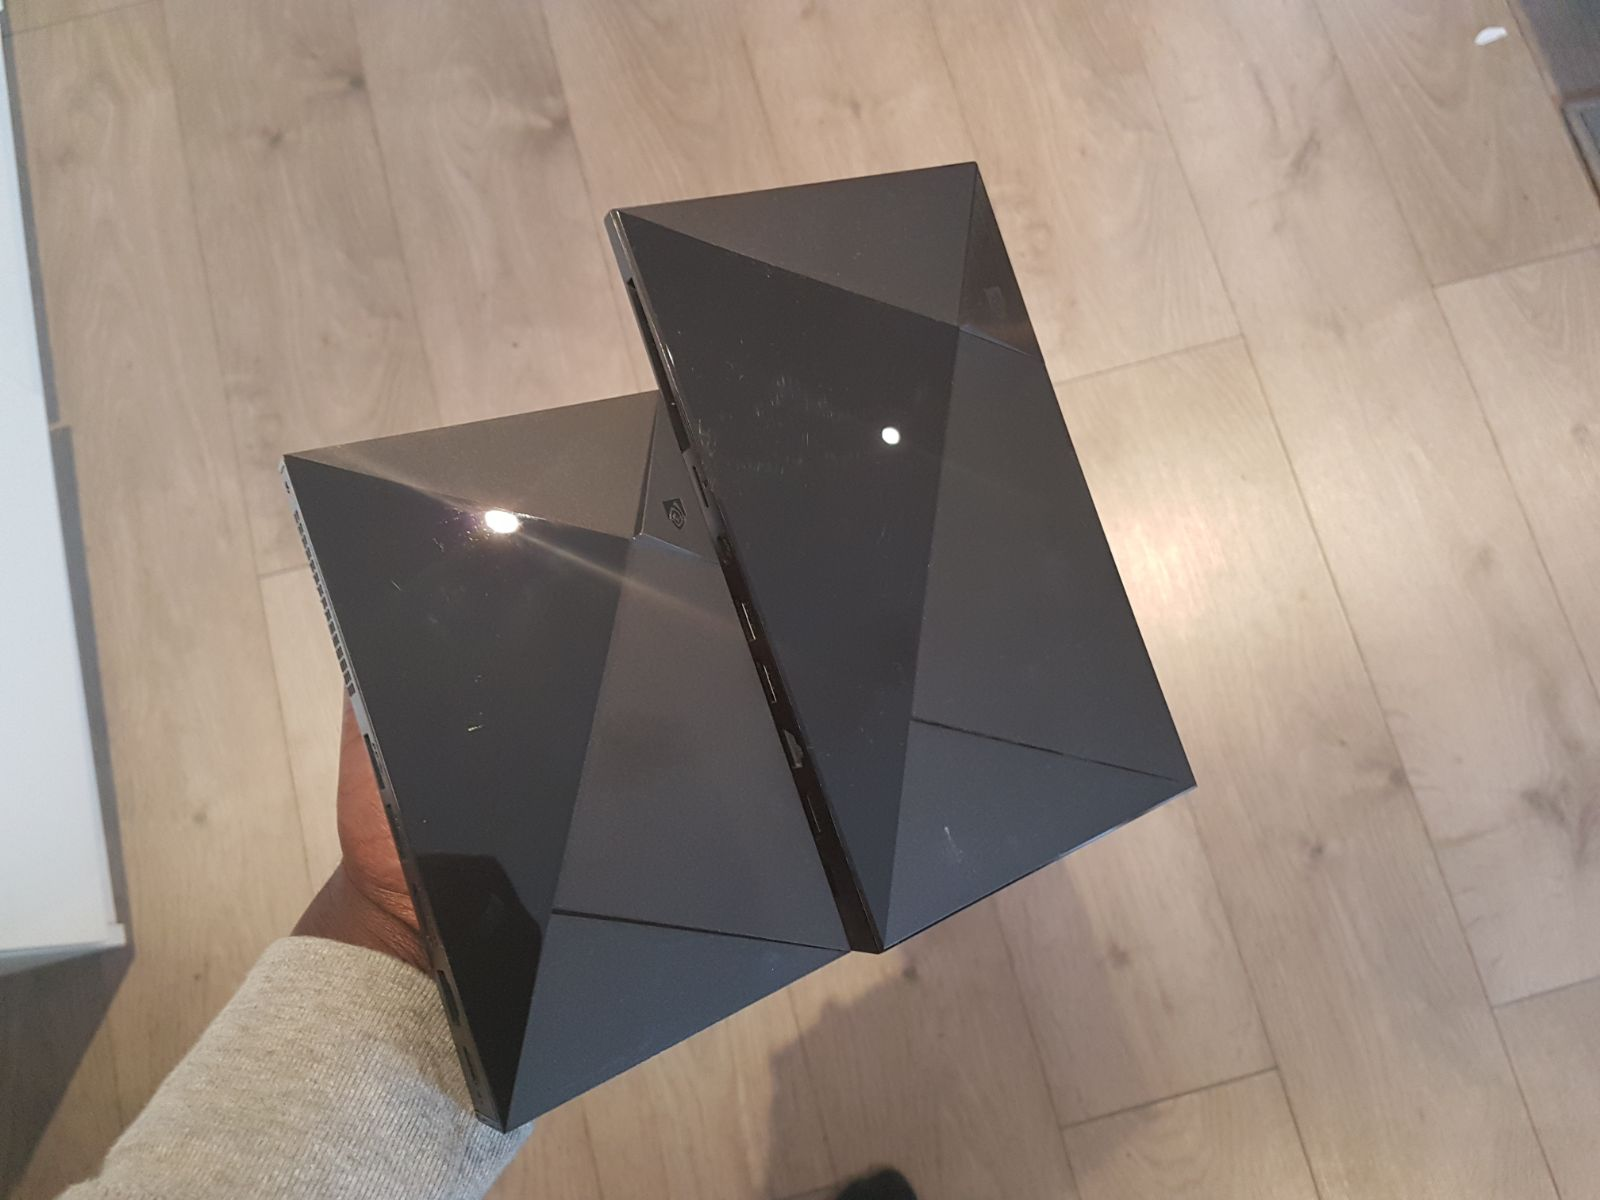 2017 NVIDIA Shield TV (2nd Gen) Review %name